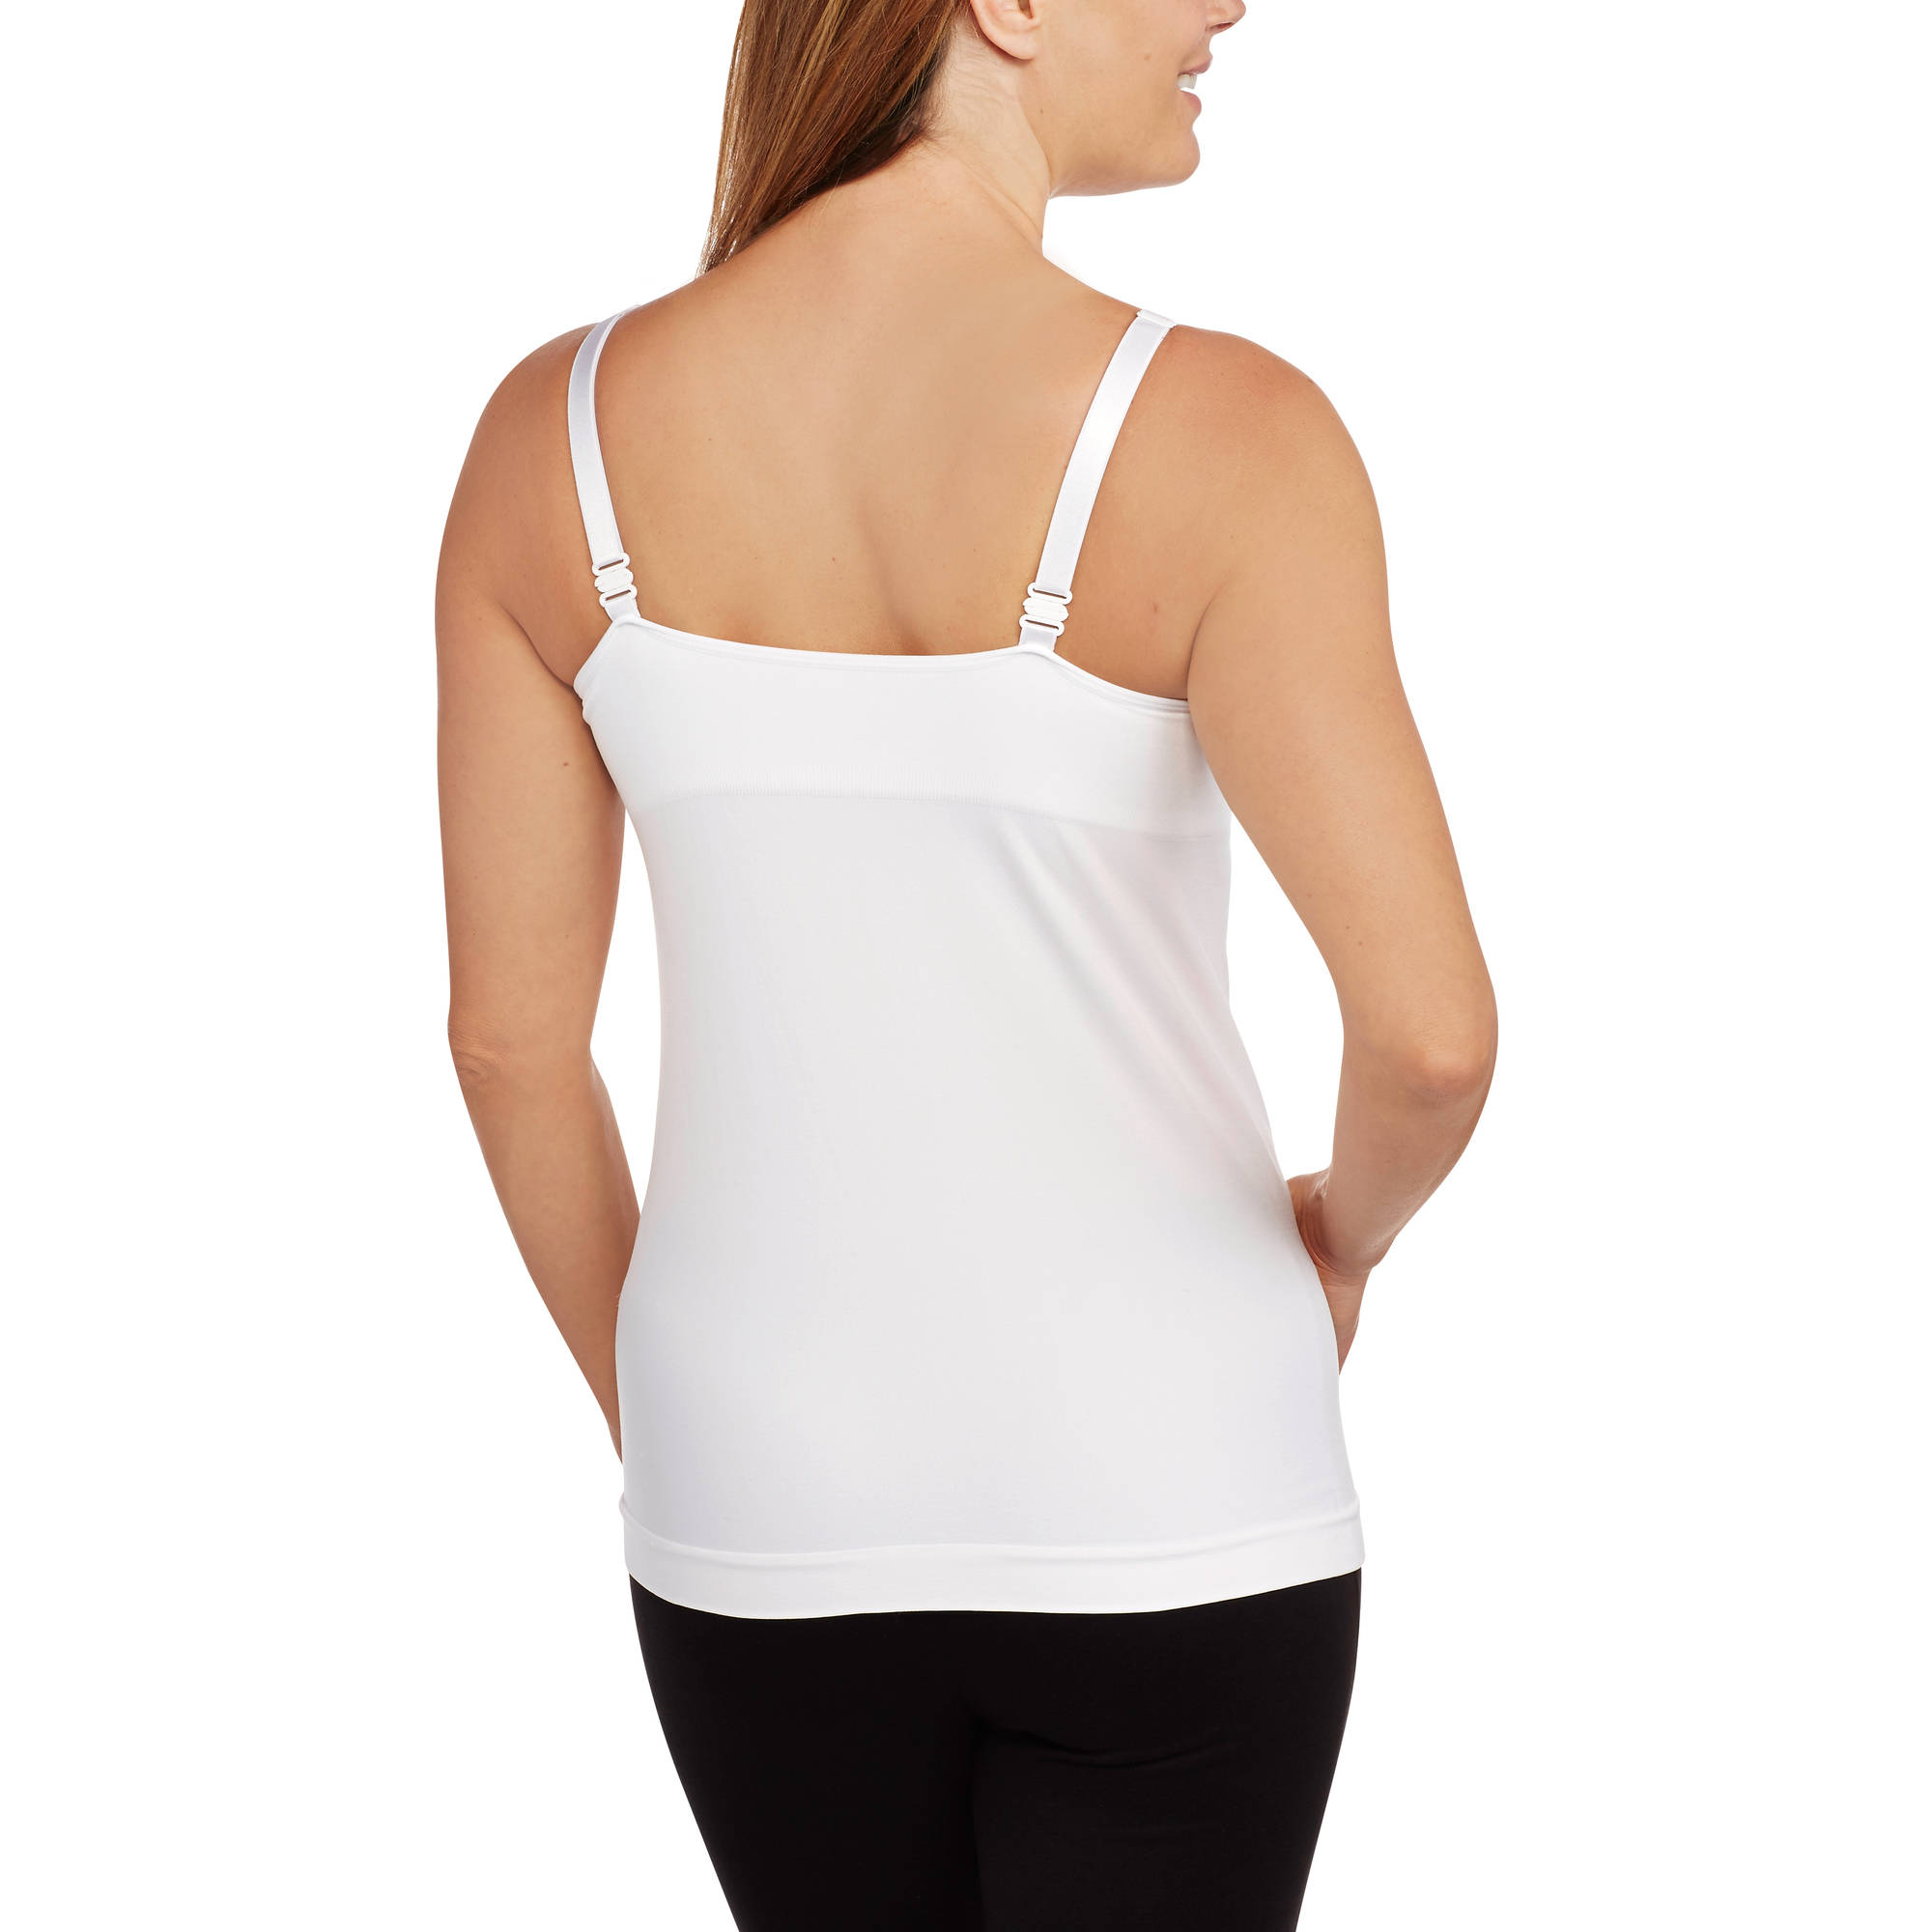 c71bbd8b700 Labor of Love - Labor of Love Maternity Essential Seamless Nursing Cami  with Removable Pads-- Available in Plus Size - Walmart.com